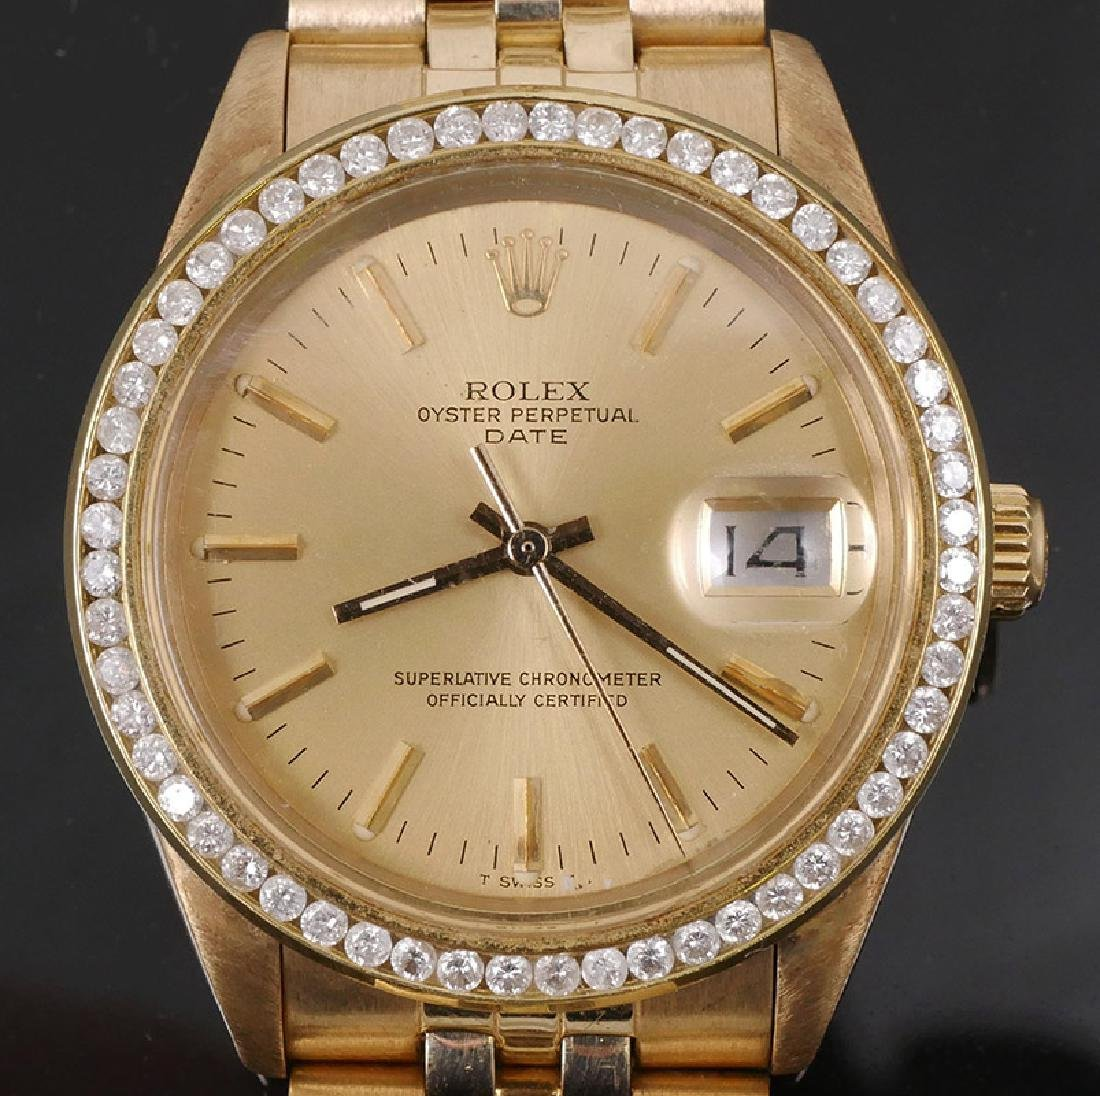 Rolex Oyster Perpetual Date 14k Gold & Diamonds